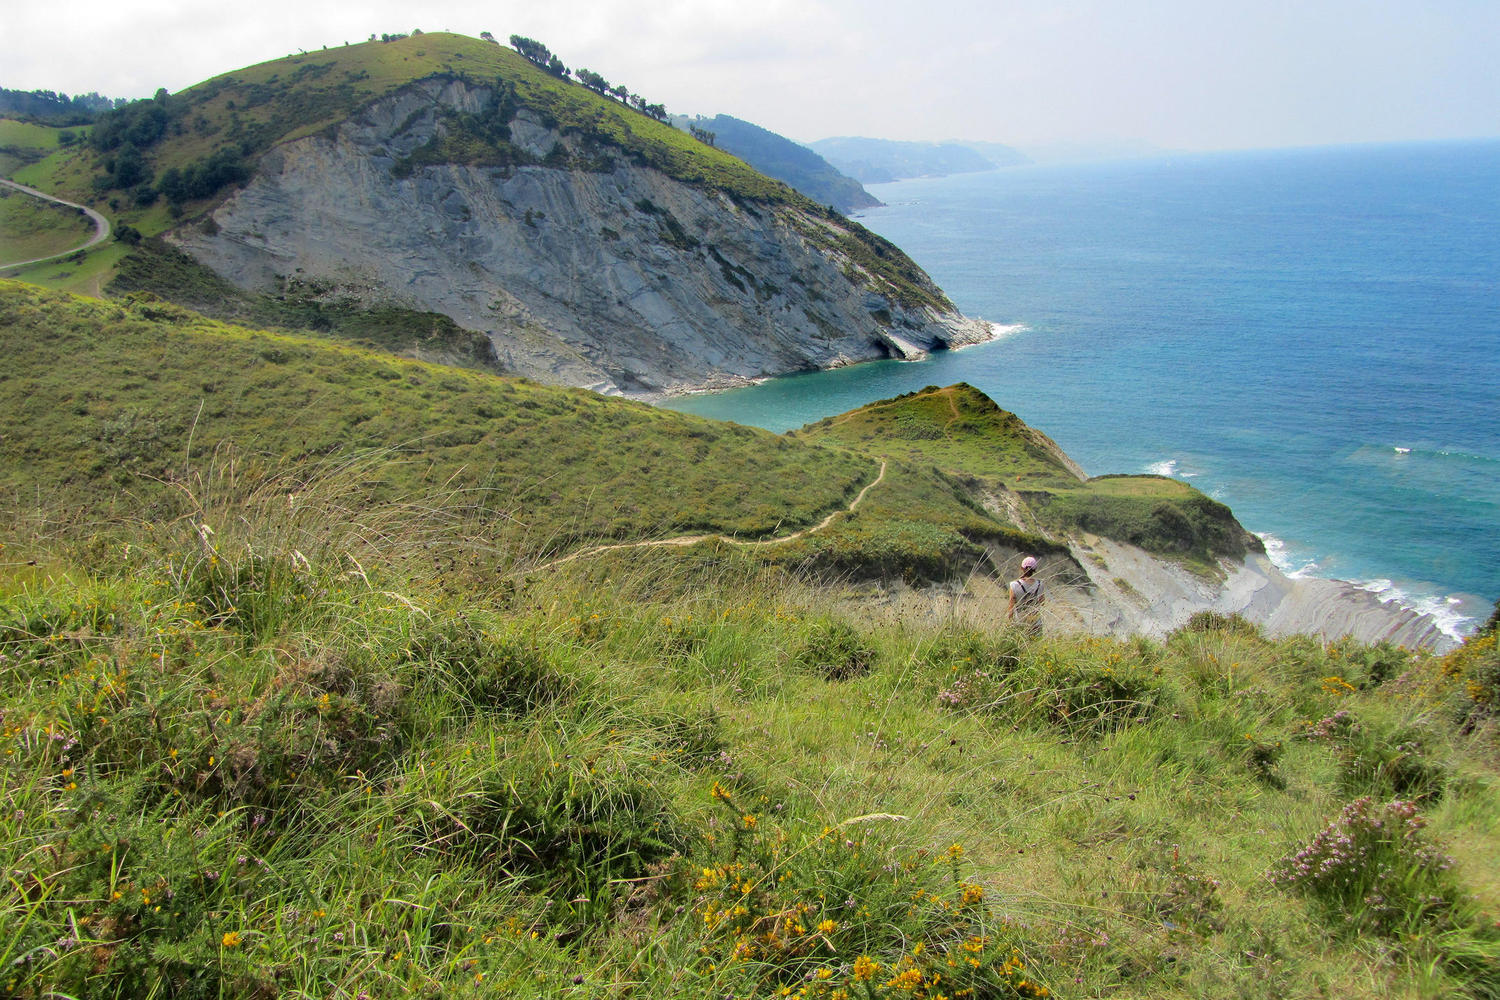 Coastal landscape between Zarautz and Deba